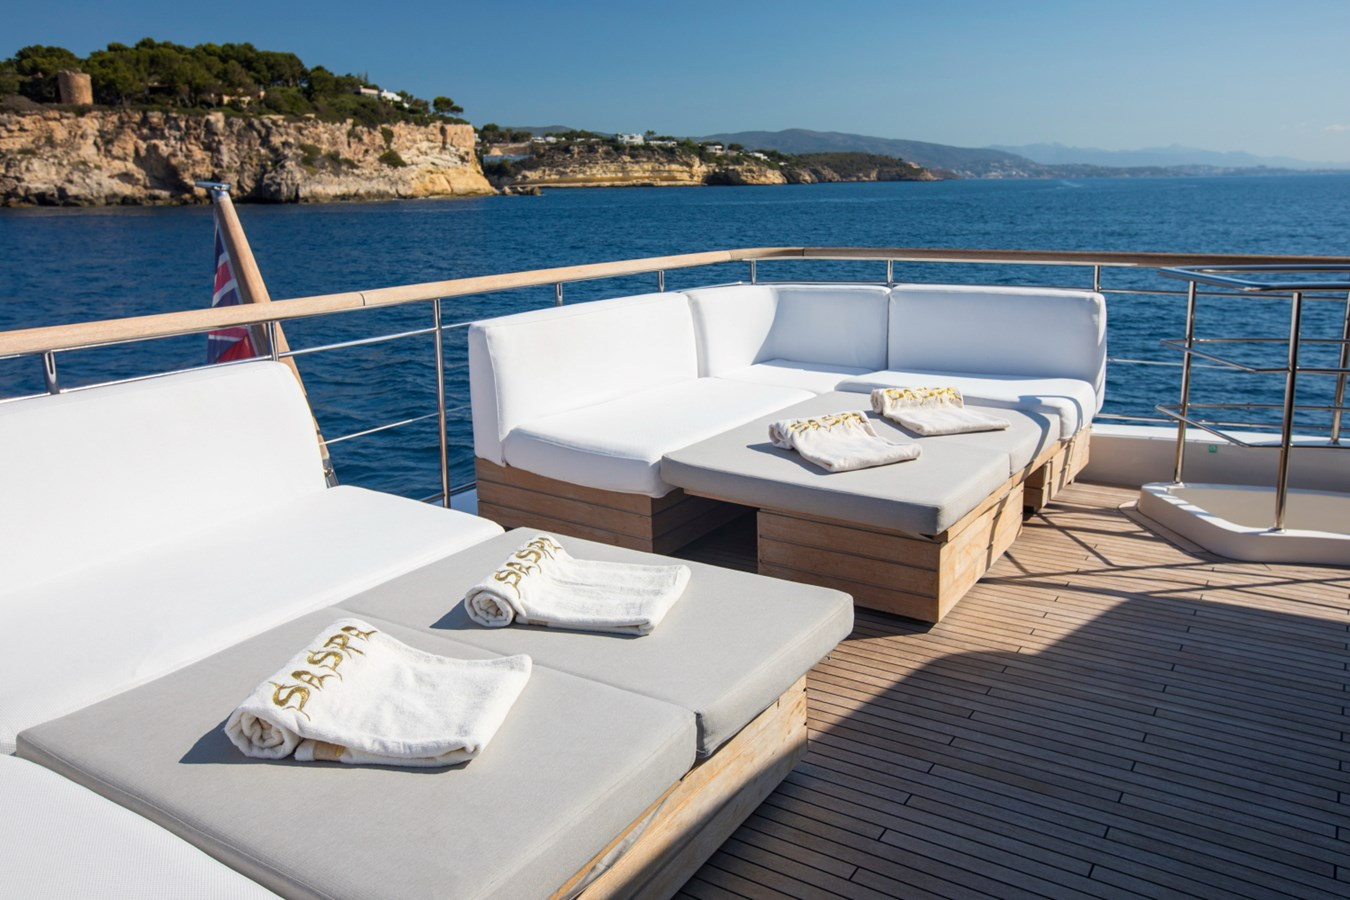 Flybridge seating and sunbathing 2010 SANLORENZO 92 SD Motor Yacht 2602772